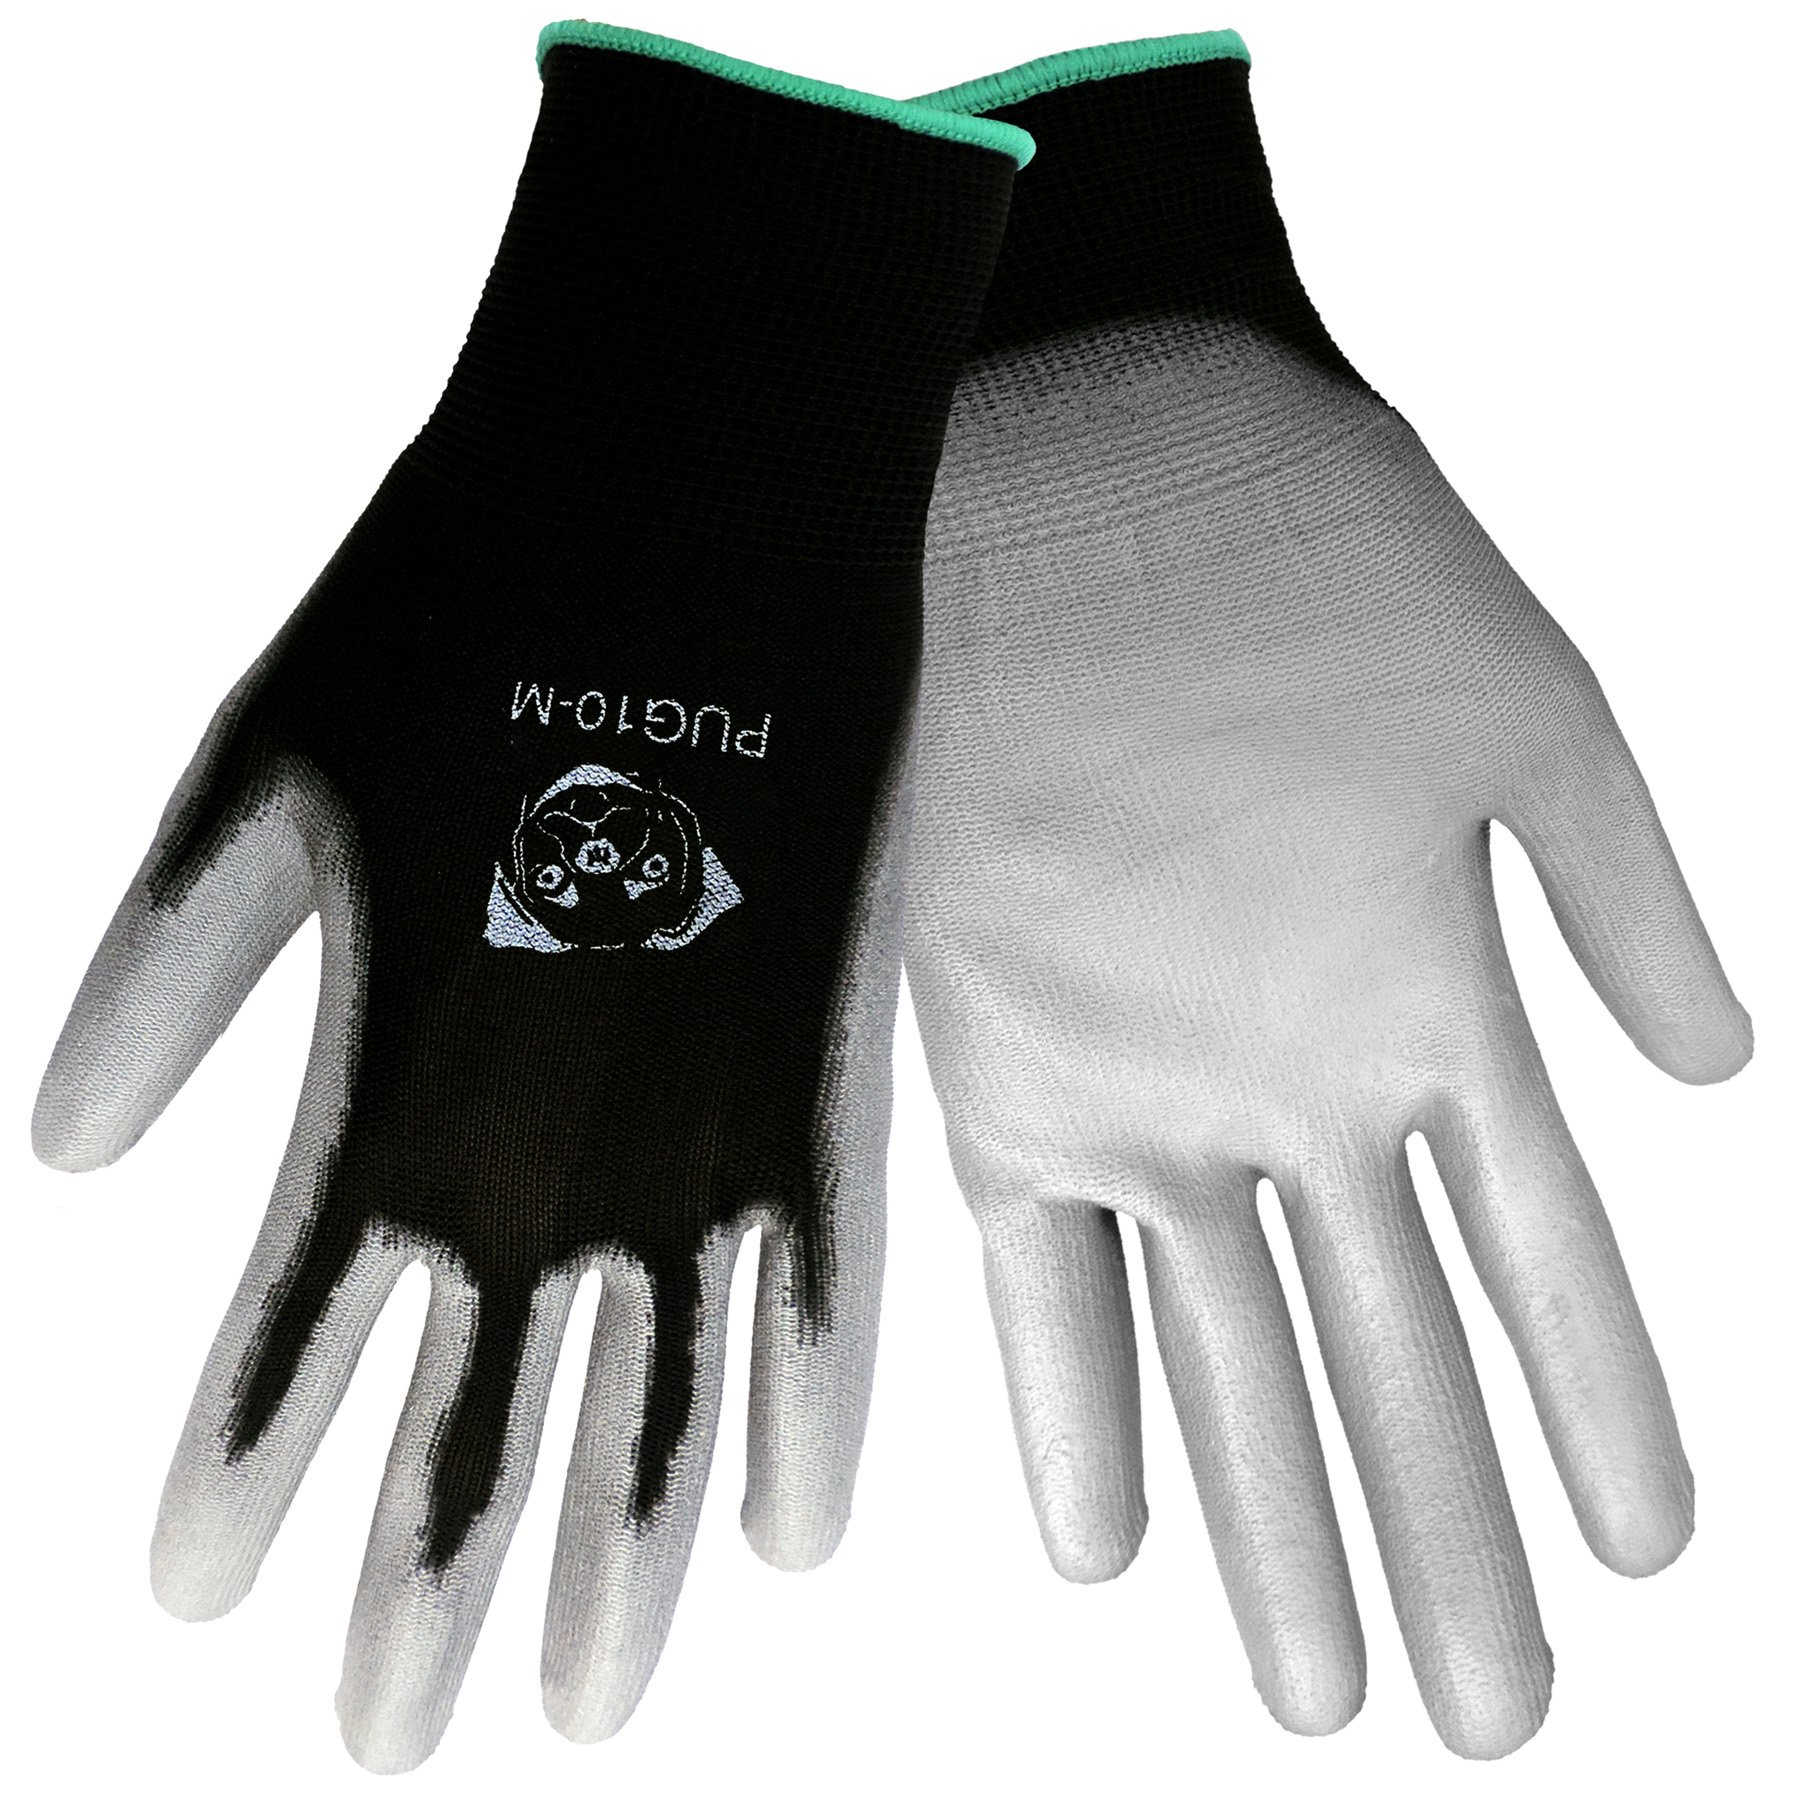 Global Glove PUG10 Economy Grade Polyurethane/Polyester Glove, Work, Large, Gray/Black (Case of 144)